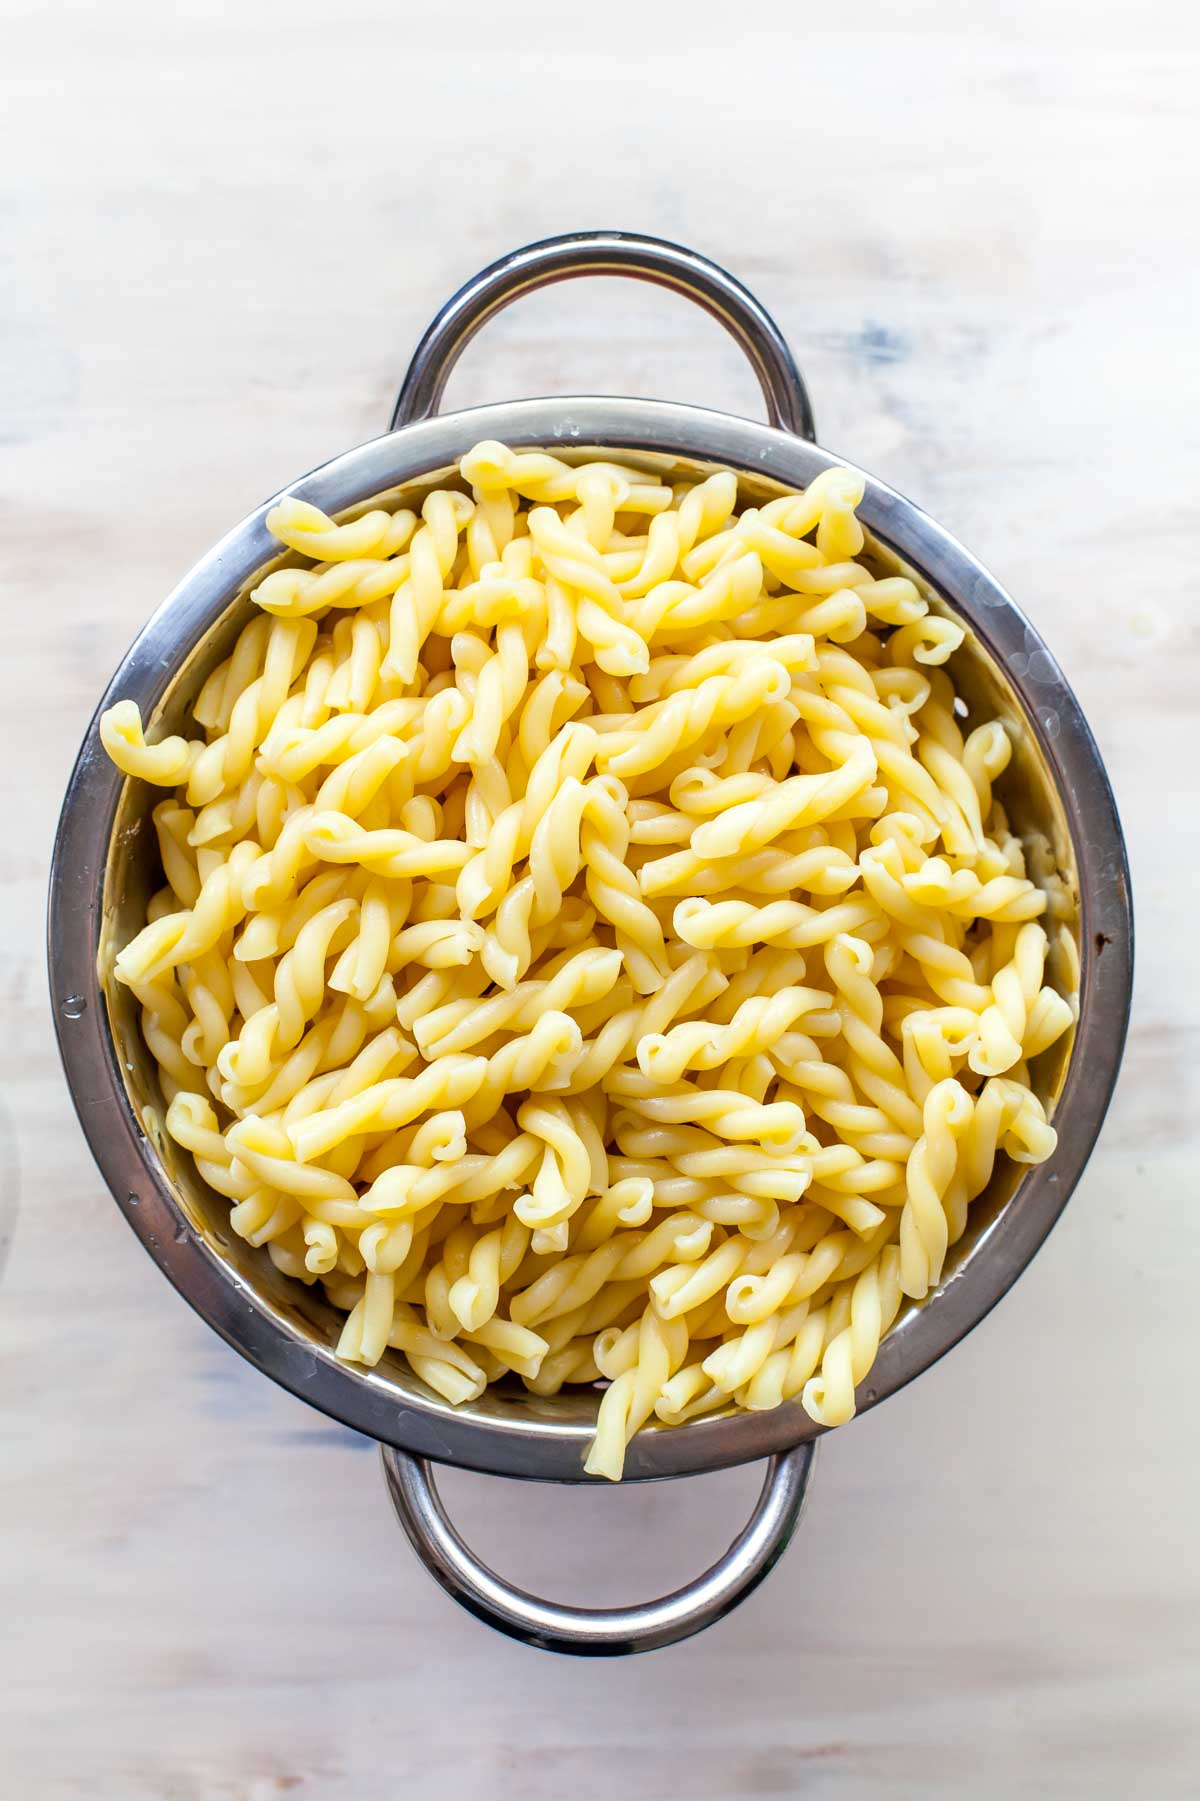 Cooked gemelli pasta in a colander on a tan surface